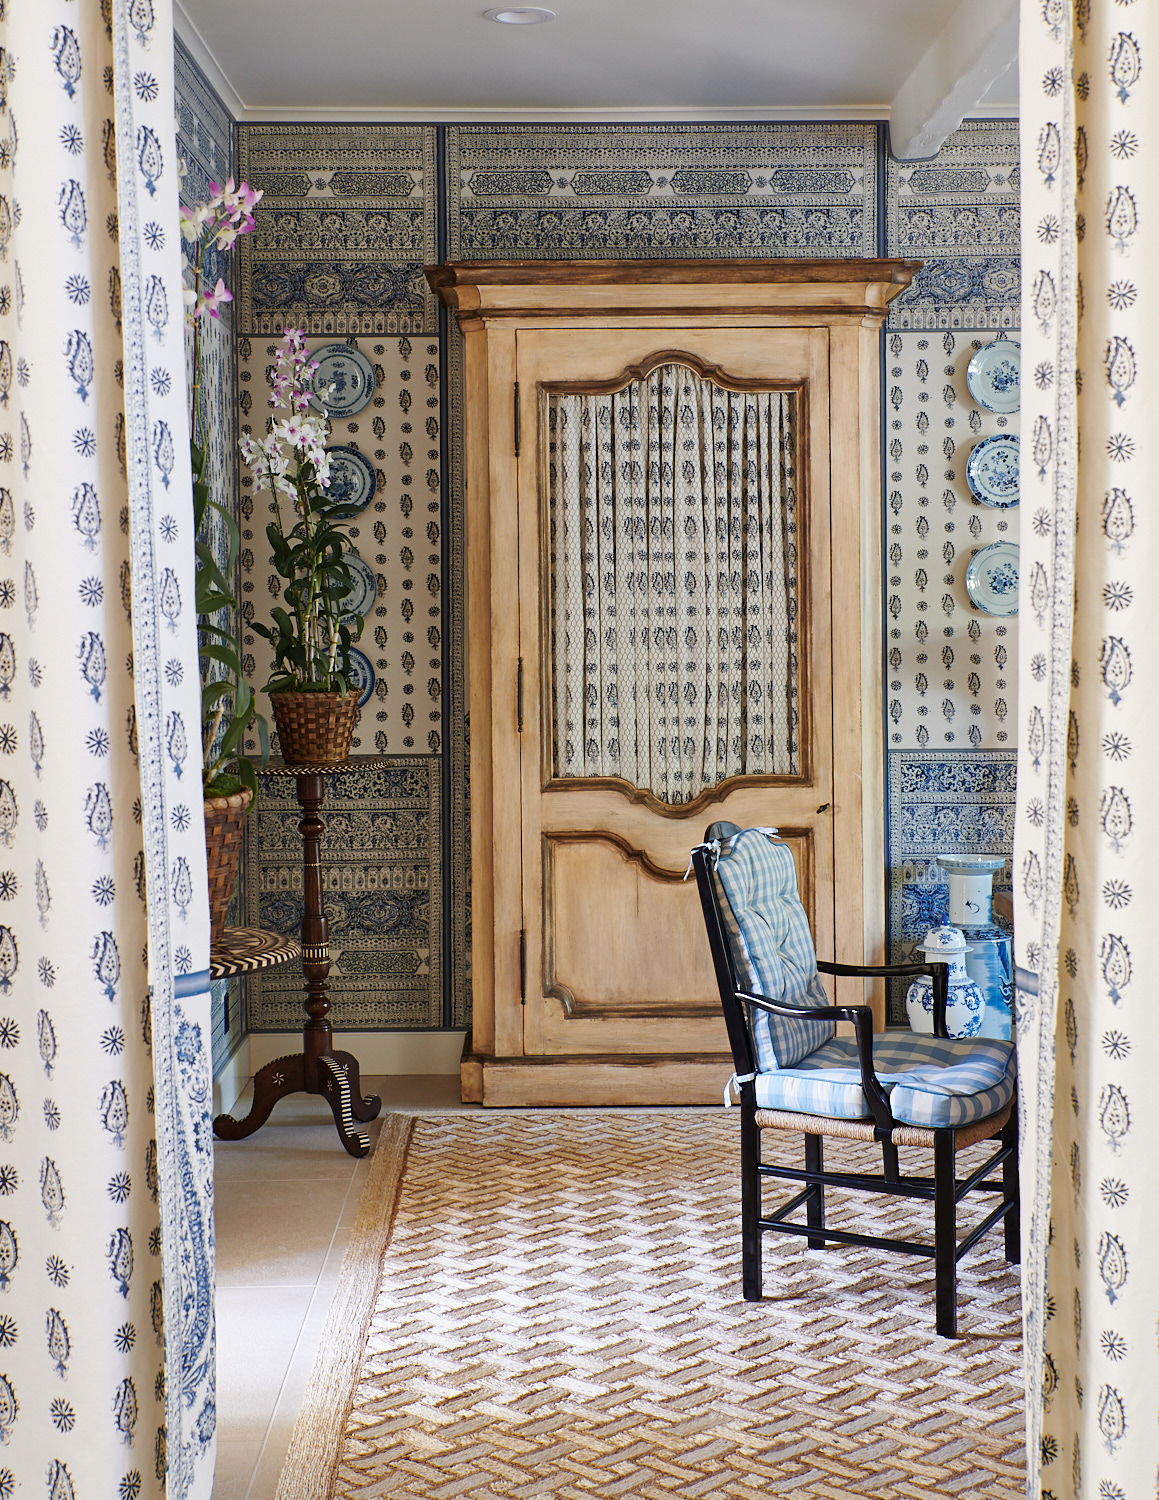 Armoire with paisley-patterned covers and plaid-cushioned seat